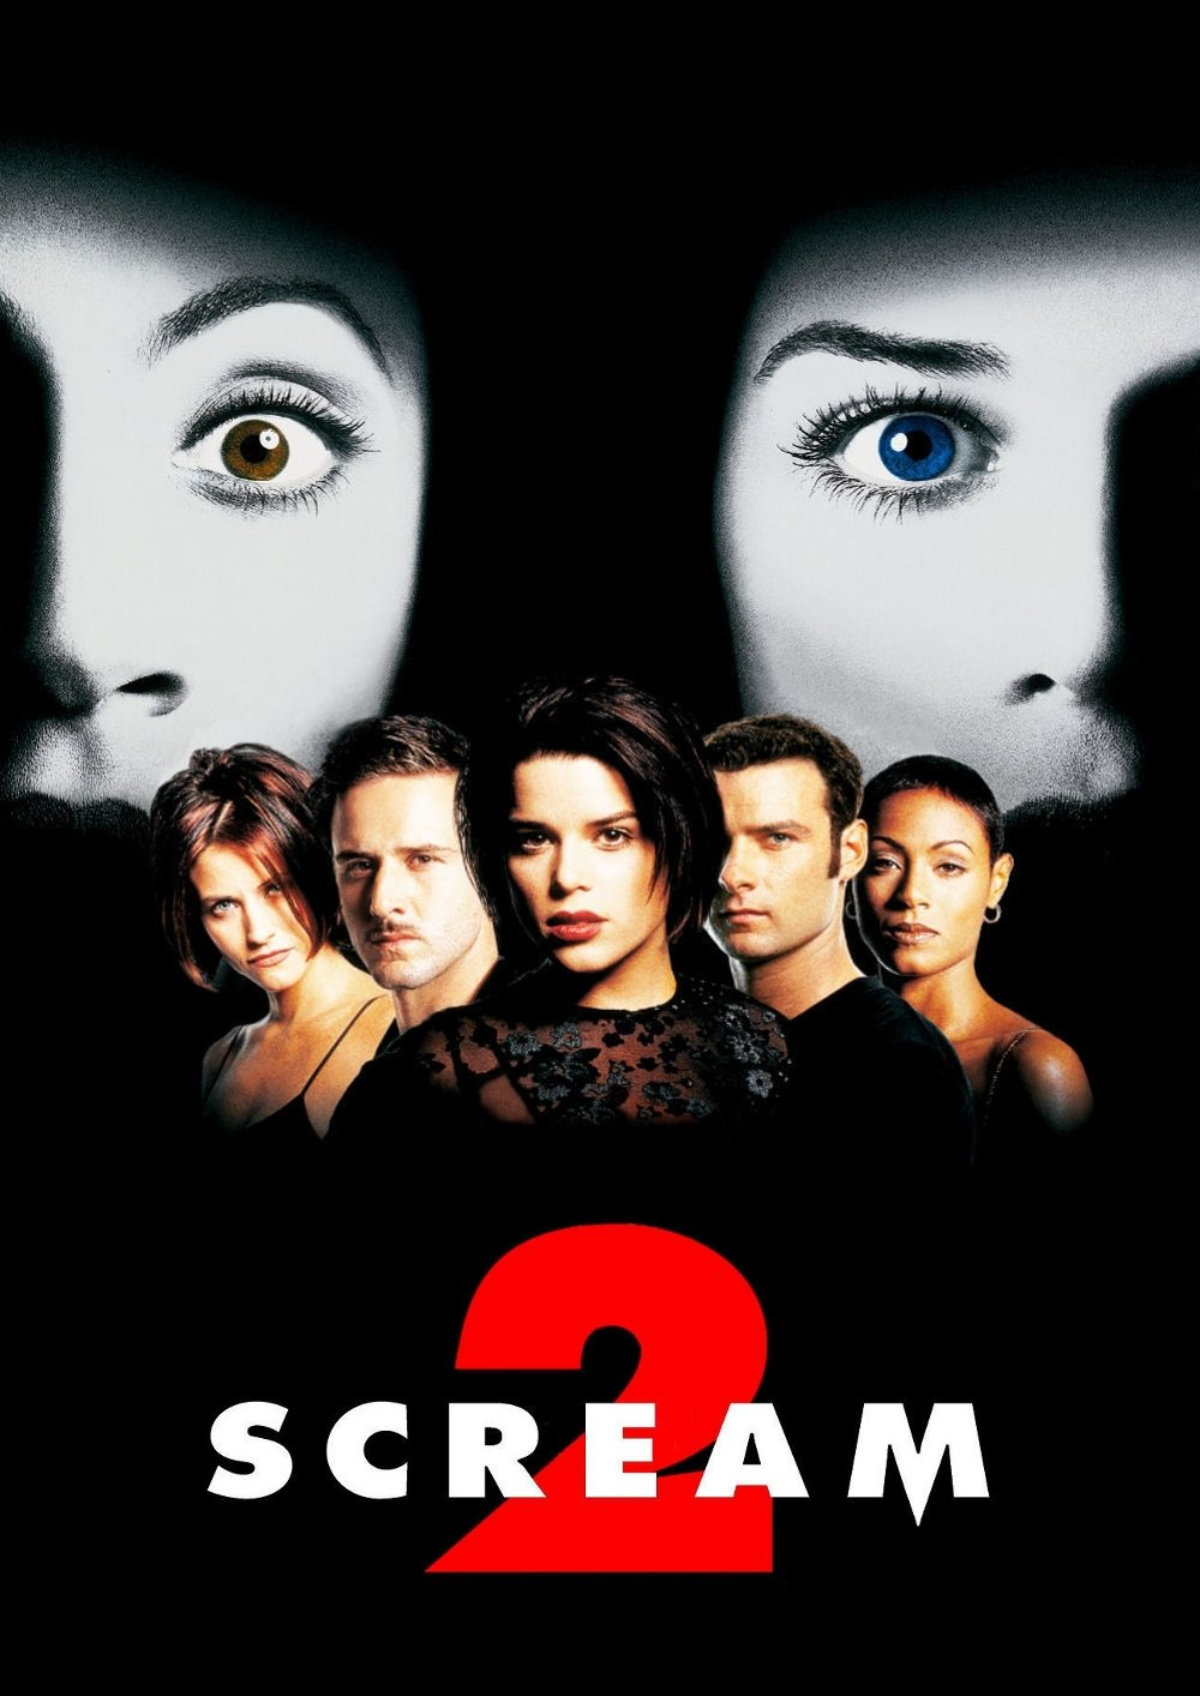 'Scream 2' movie poster